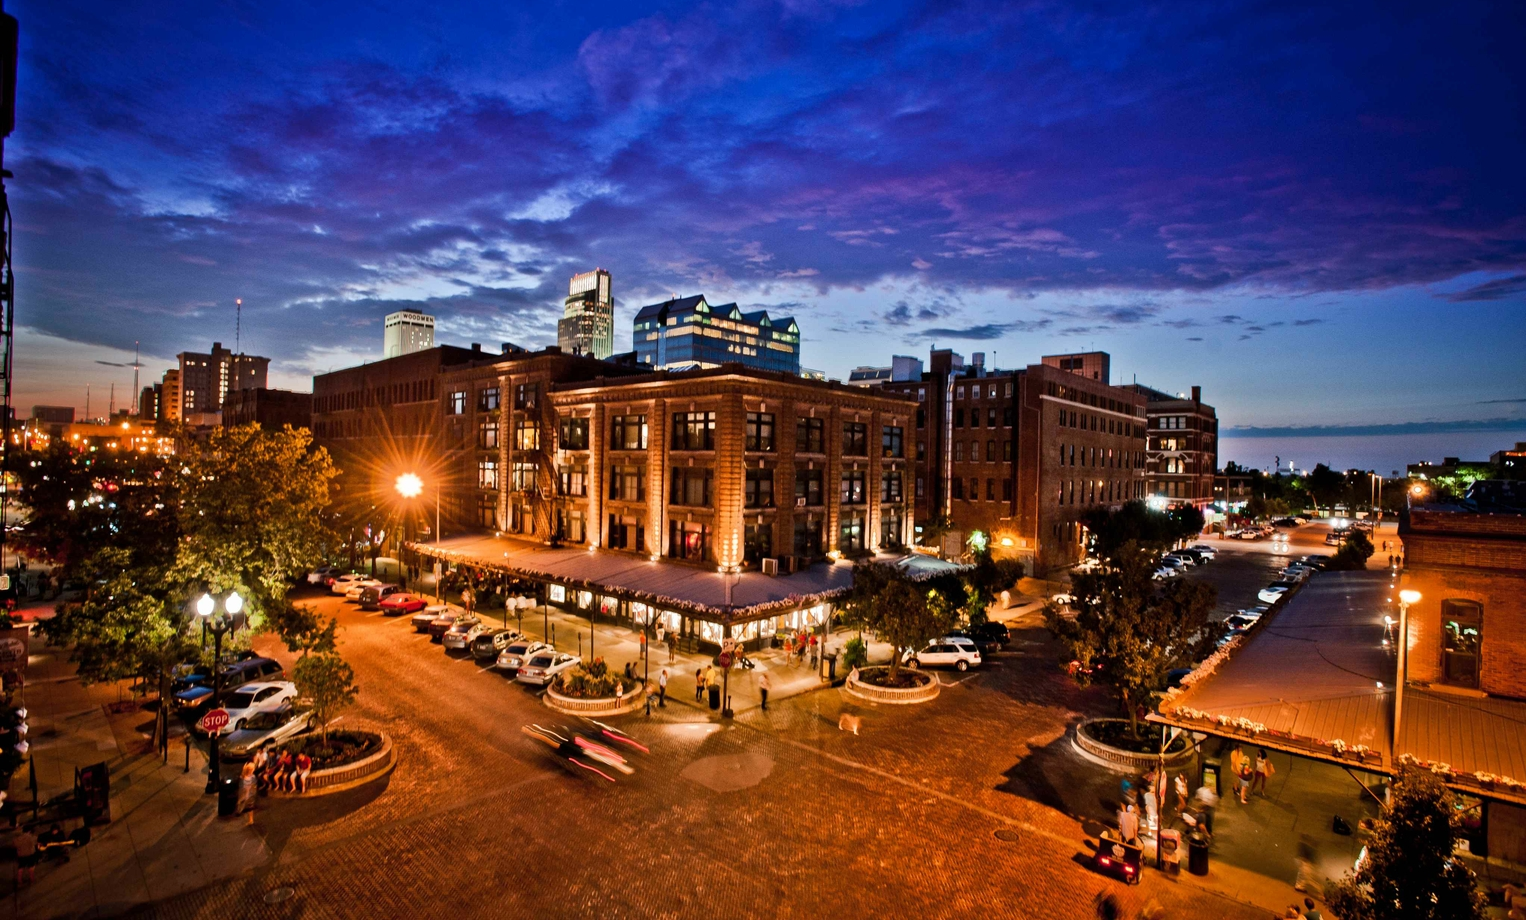 America's Top 10 Small Cities 2019